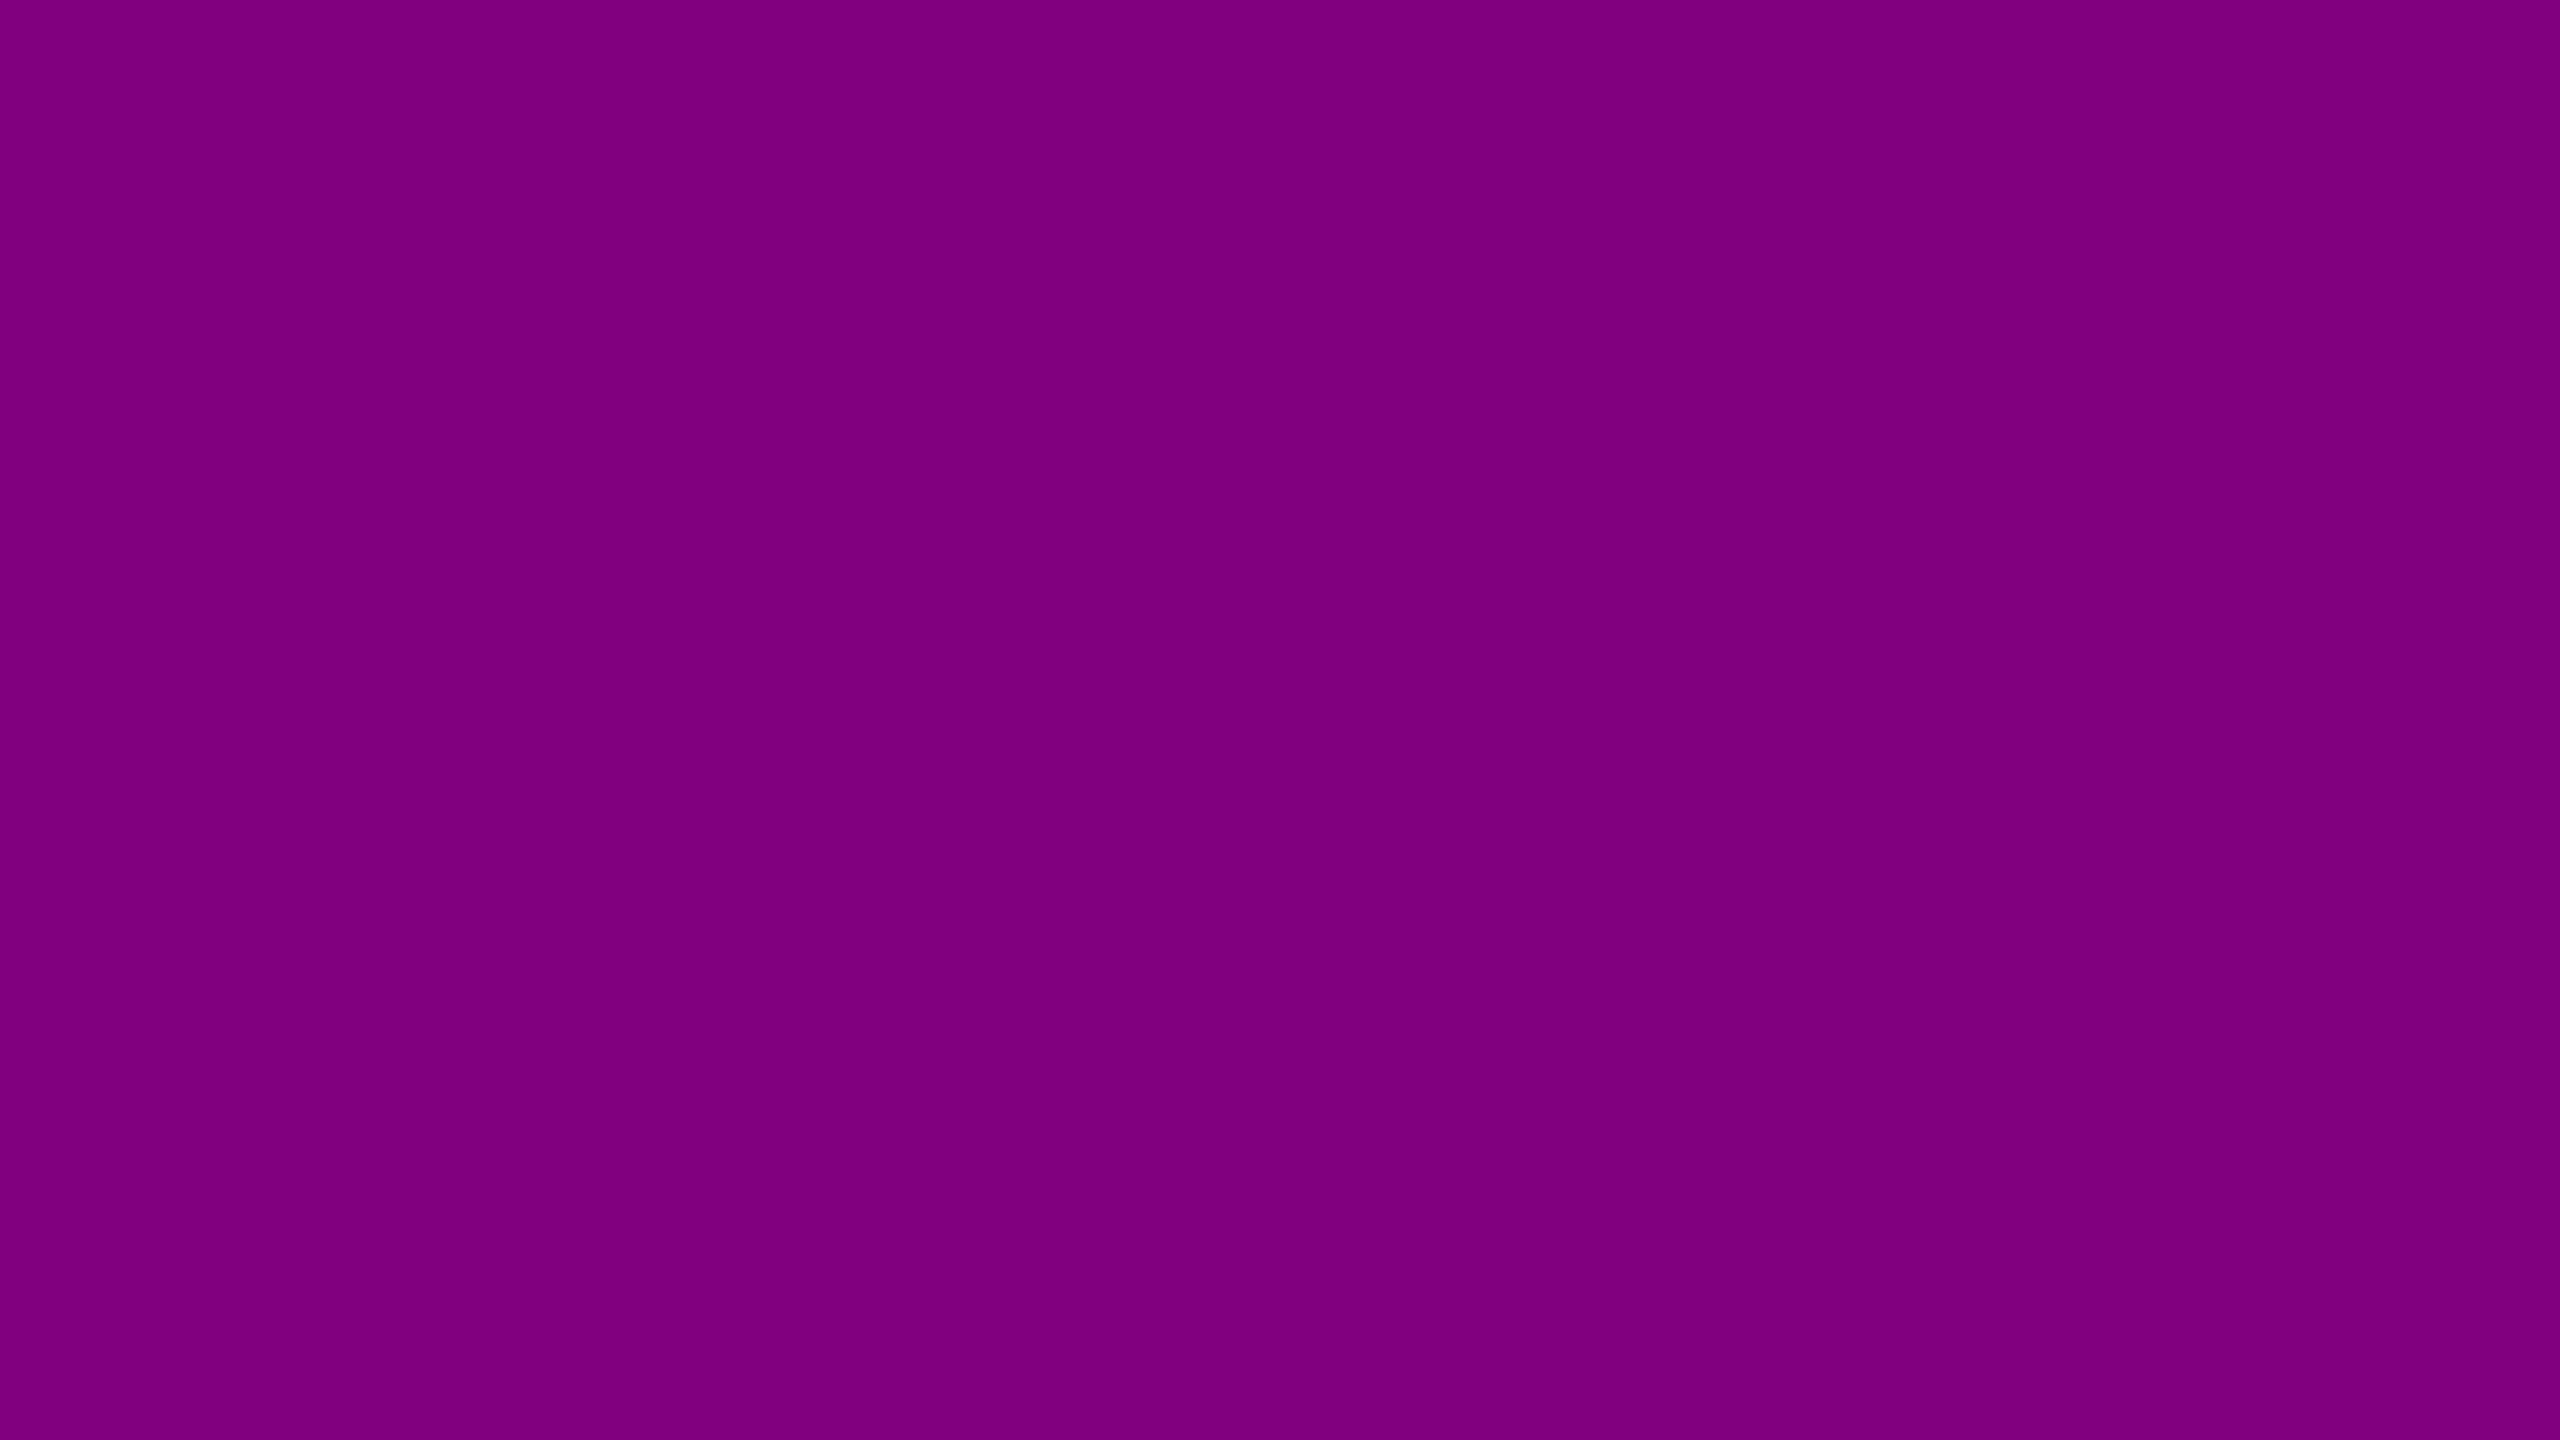 Purple color background wallpapersafari - What colors go with purple ...